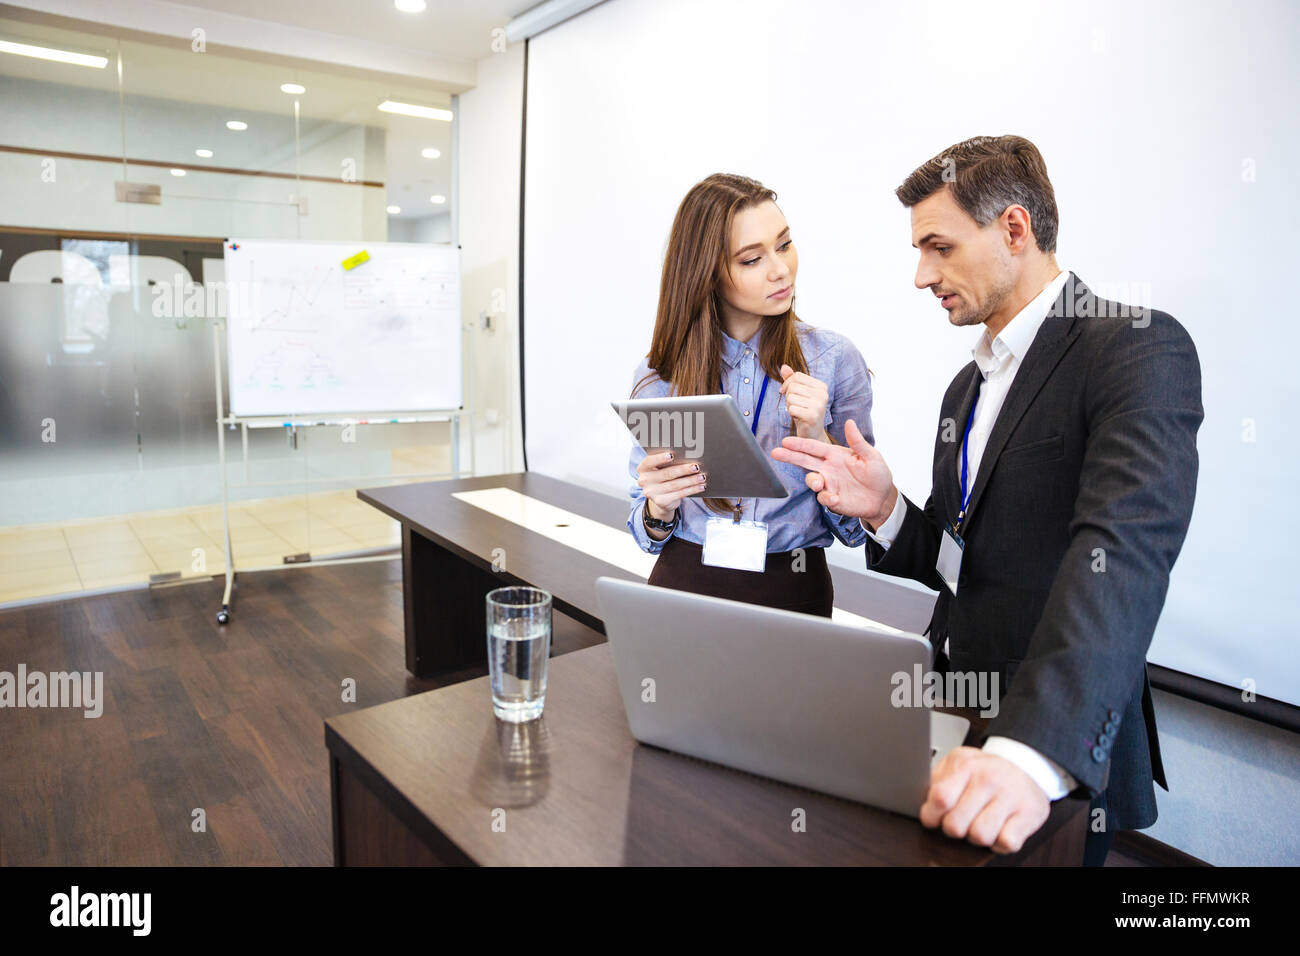 Businessman and his secretary standing and planning work in office - Stock Image